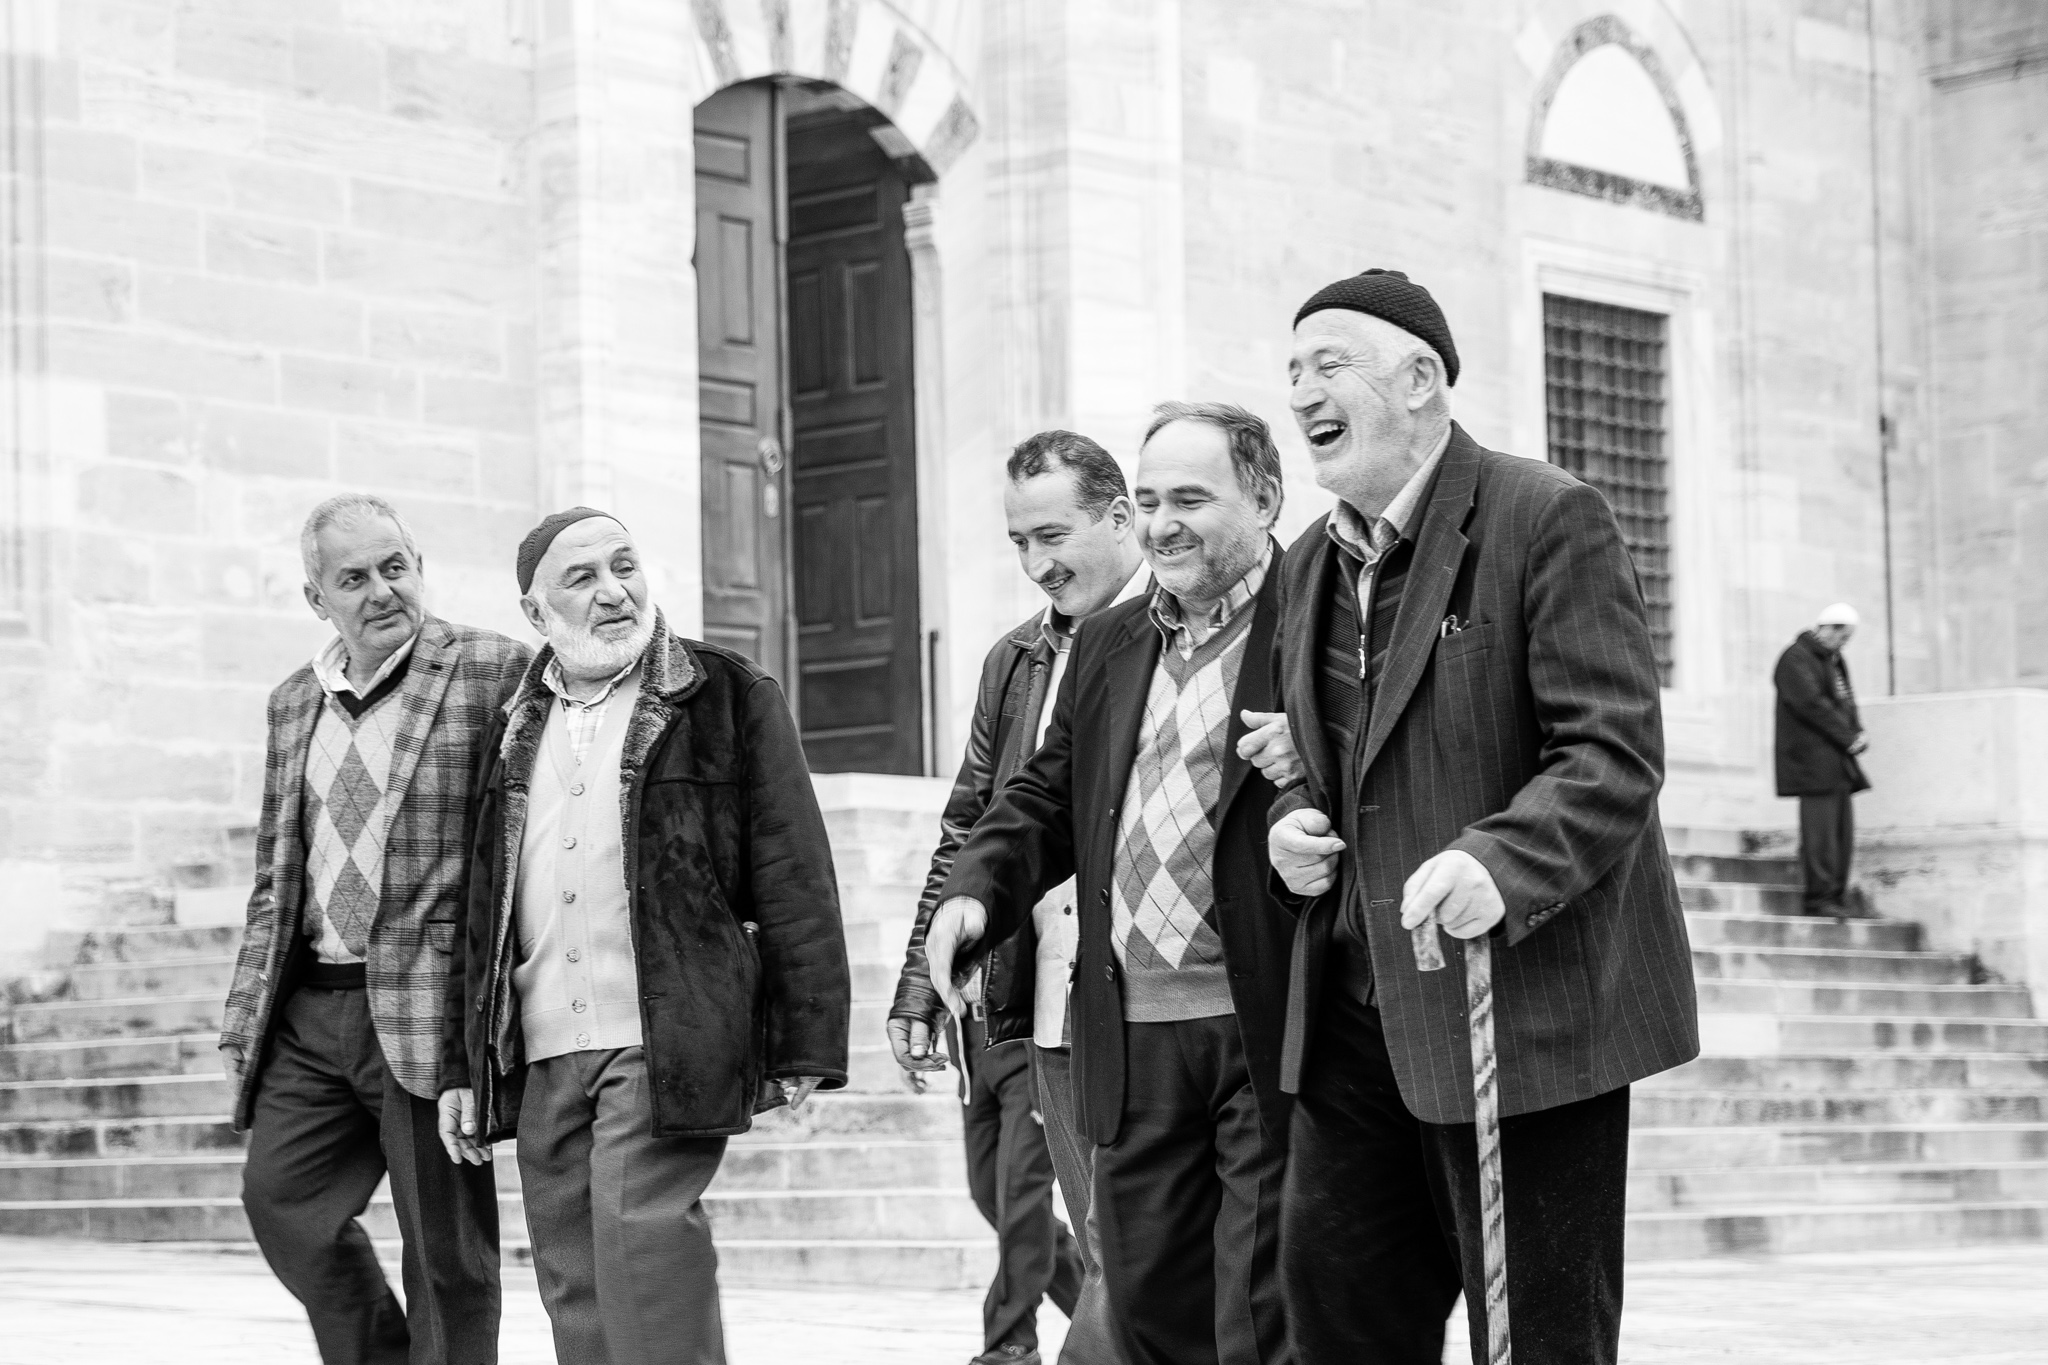 istanbul_street-fevzi-pasa-cad-2088_elderly-men-laughing-leaving-mosque.jpg